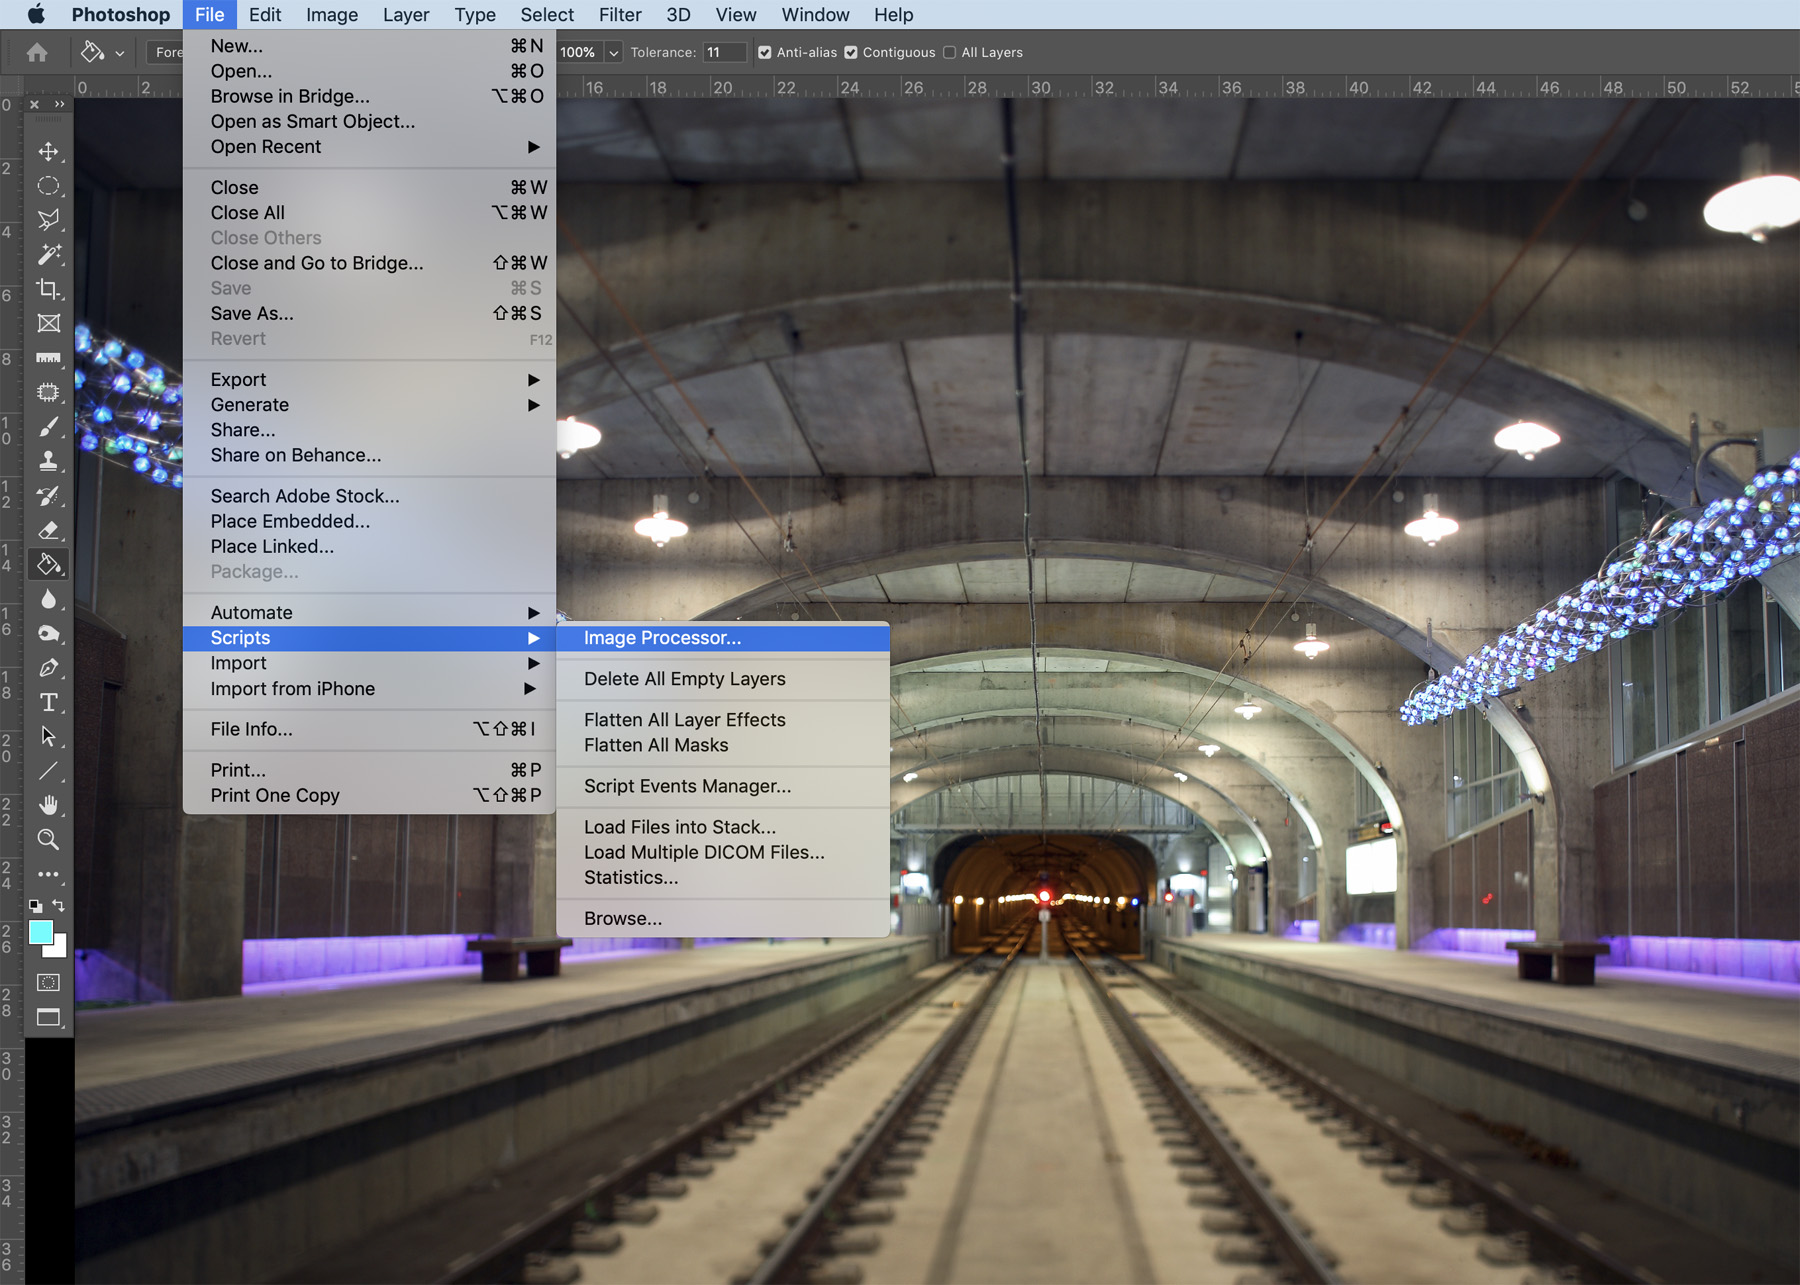 How To Use Photoshop's Image Processor